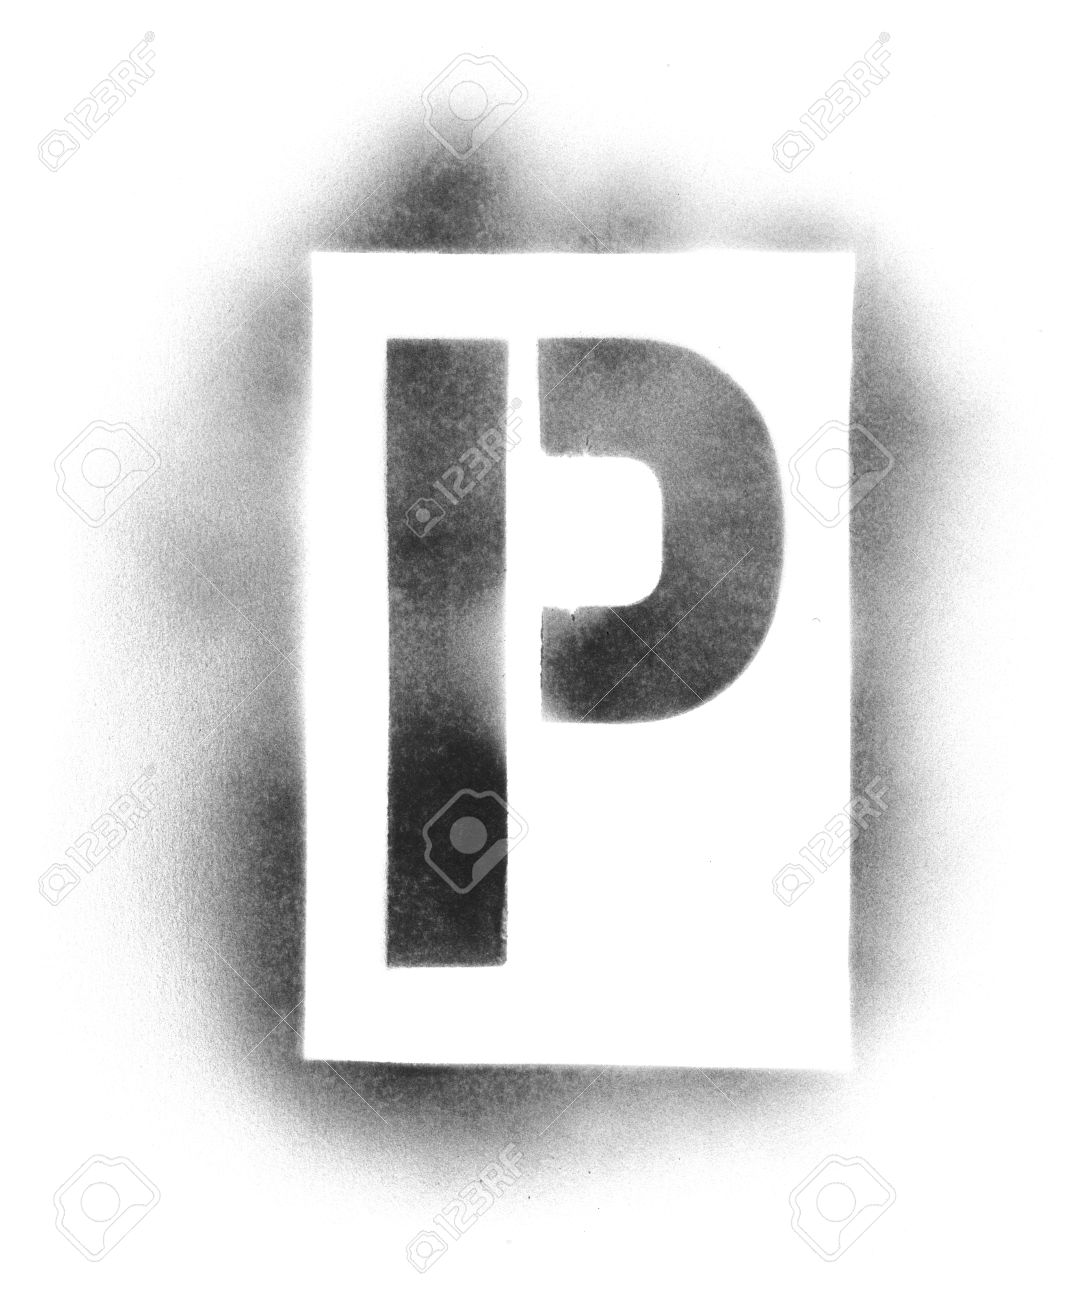 Stencil letters in spray paint stock photo picture and royalty free stencil letters in spray paint spiritdancerdesigns Gallery